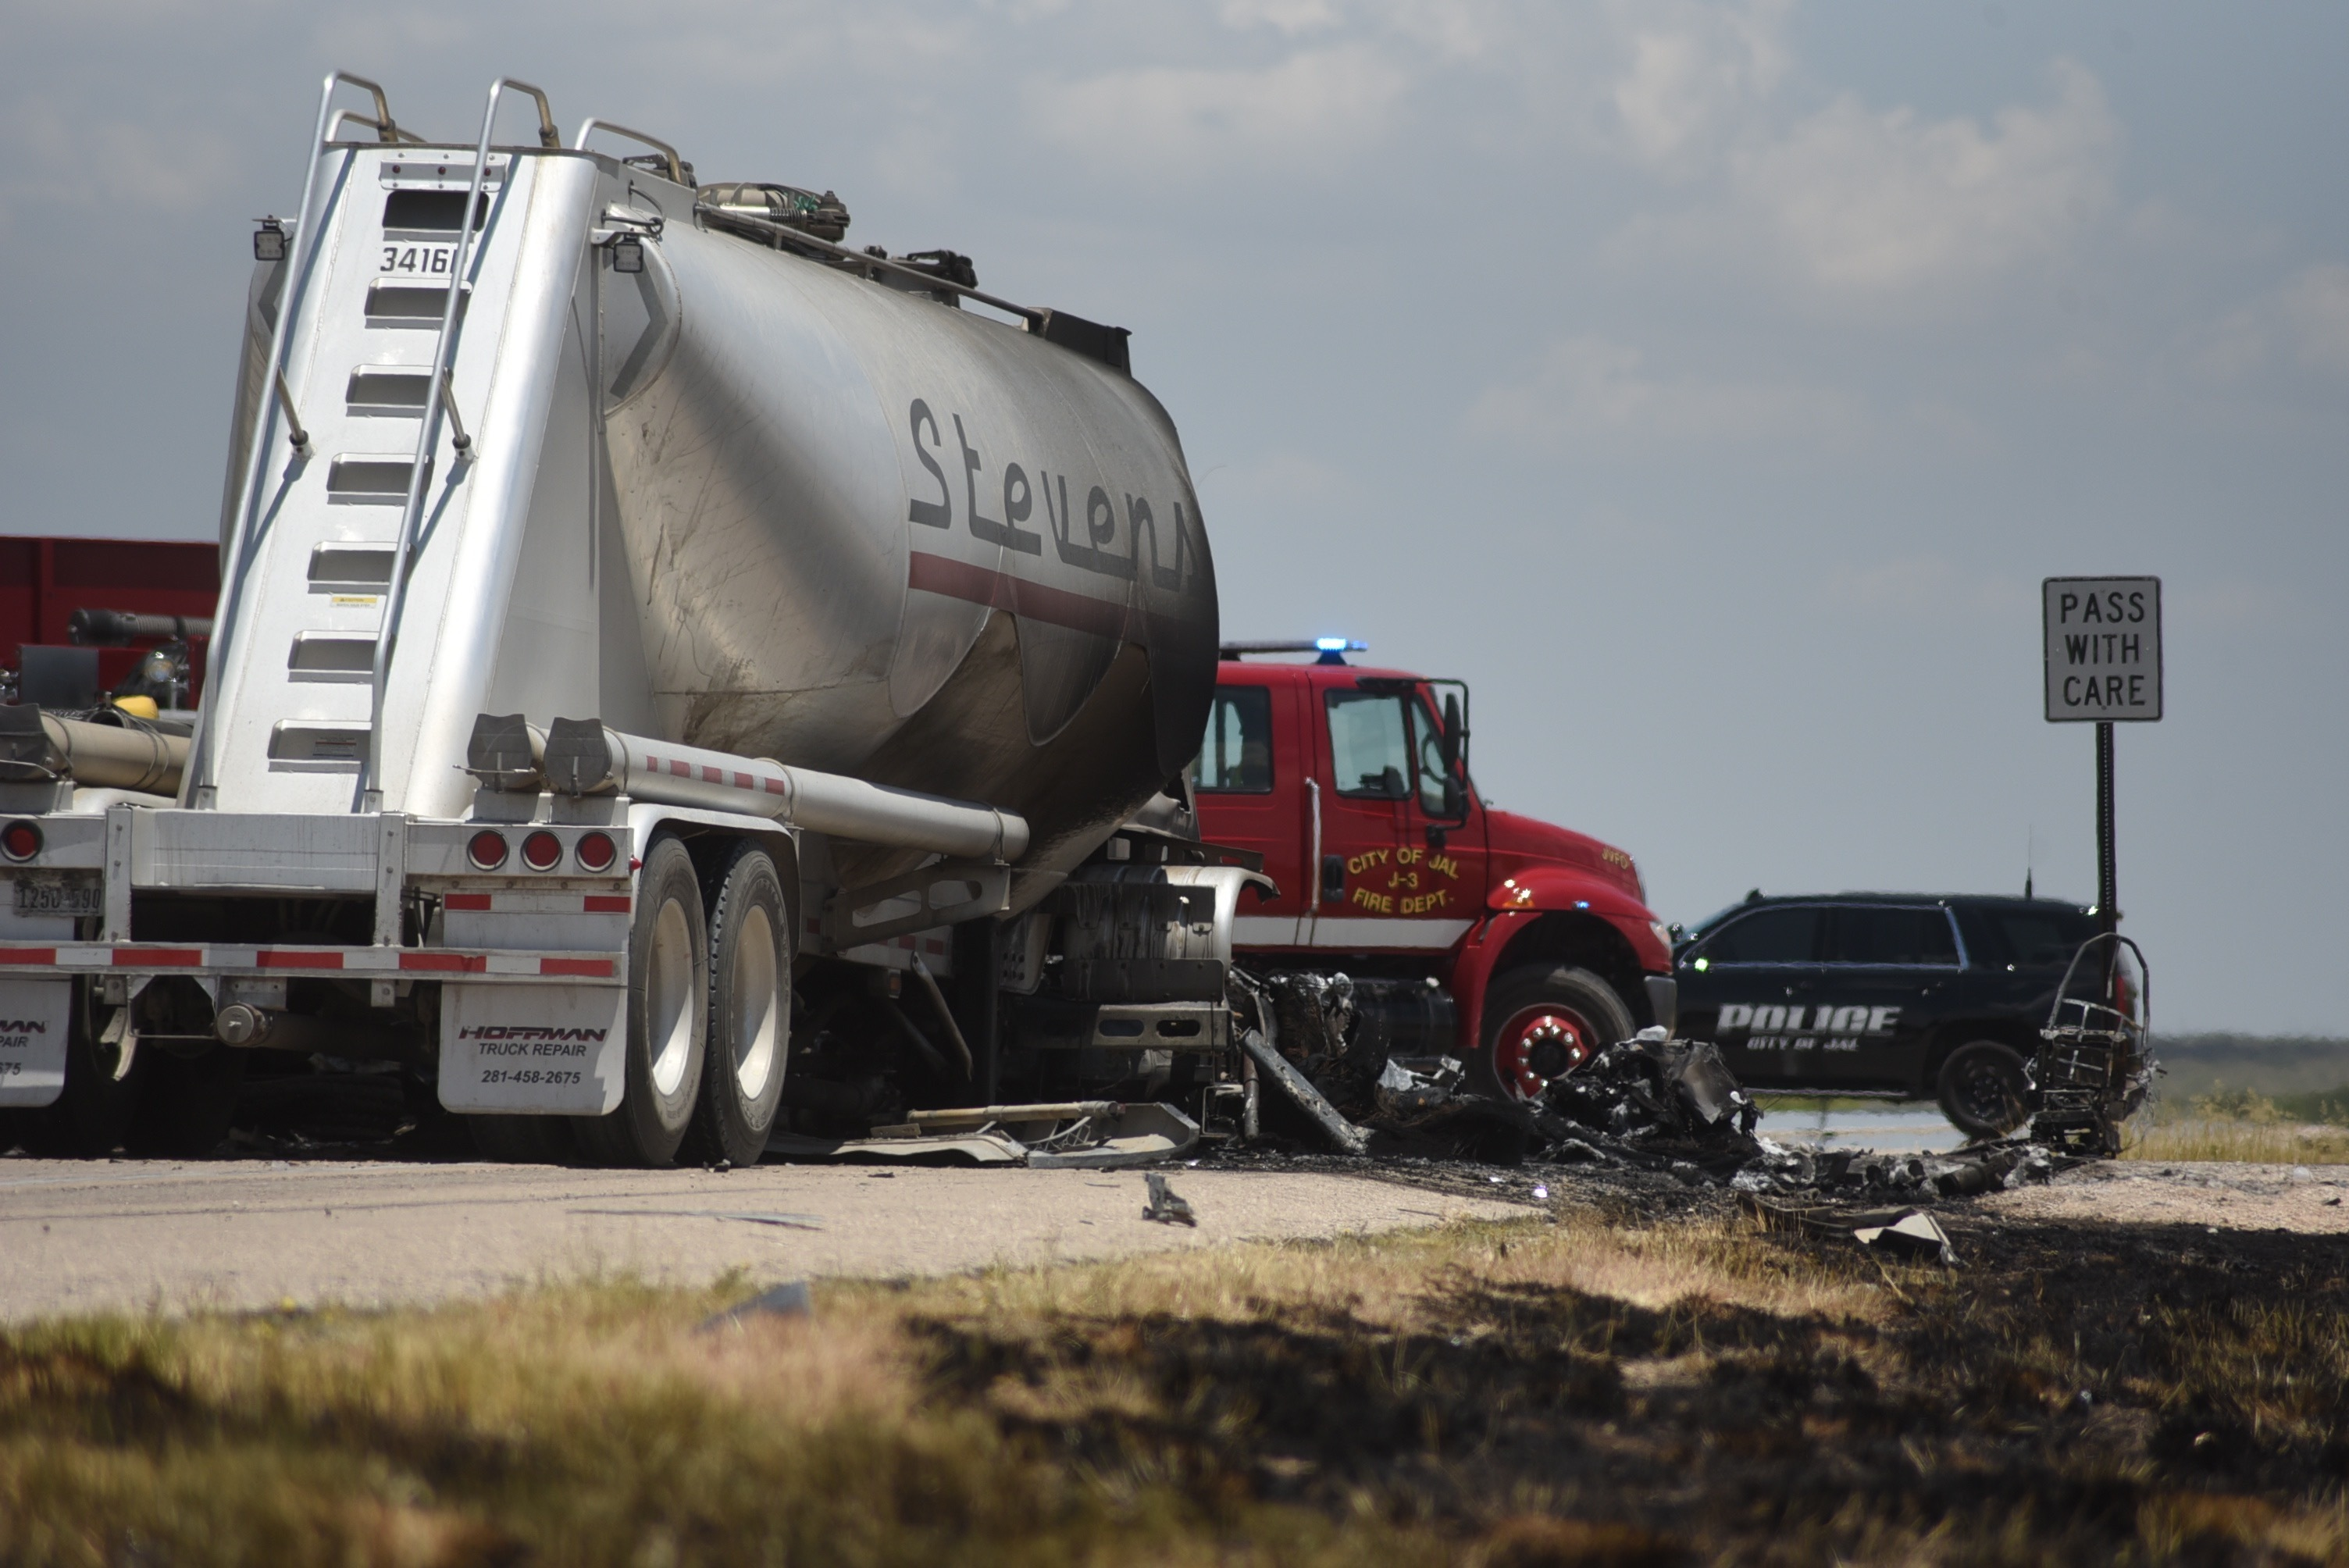 Police: Oilfield workers, truck driver killed in fiery crash